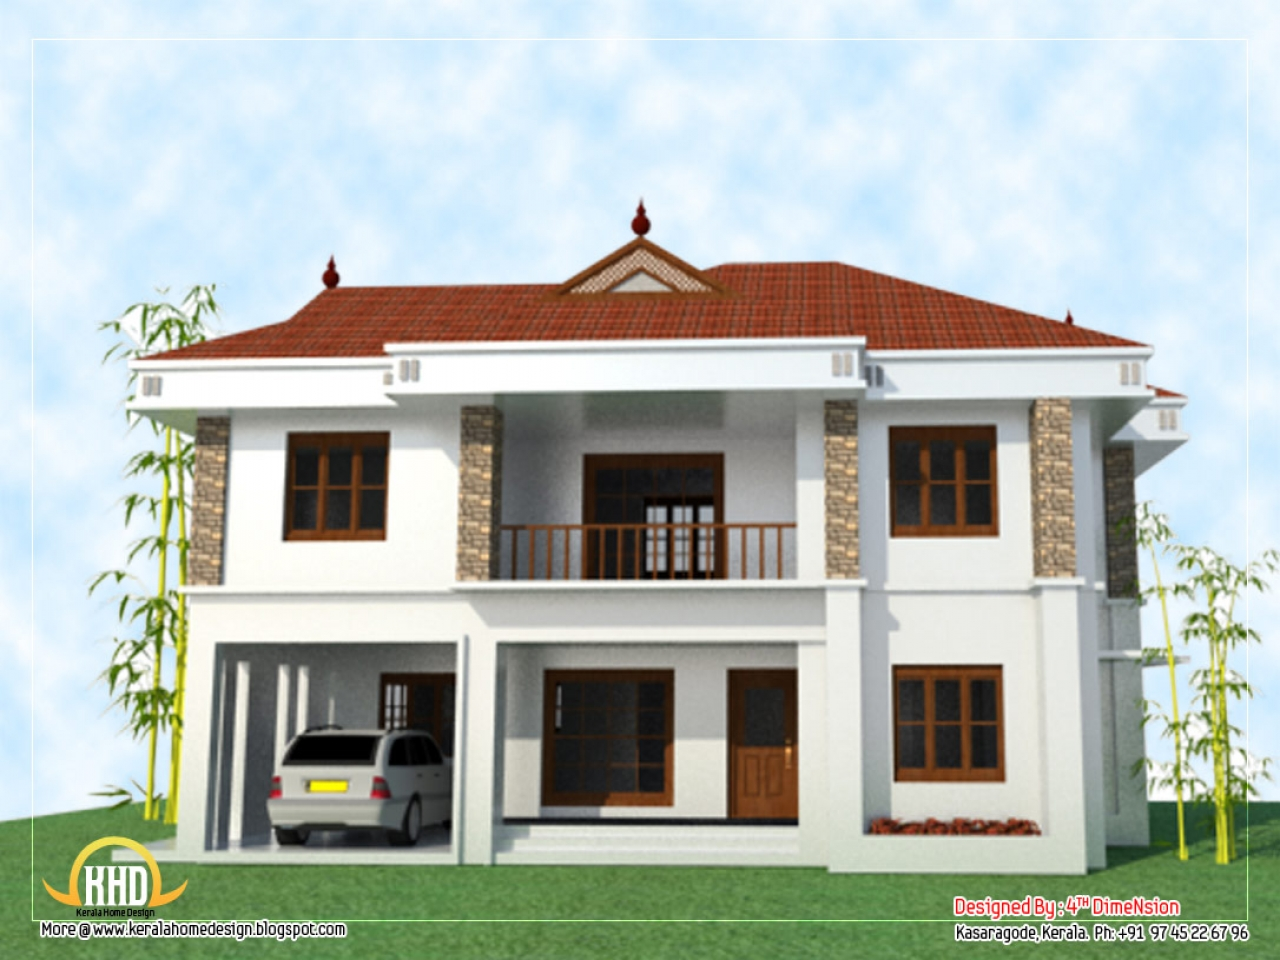 Two storey house design 2 story home designs new 2 story for Home designs two story